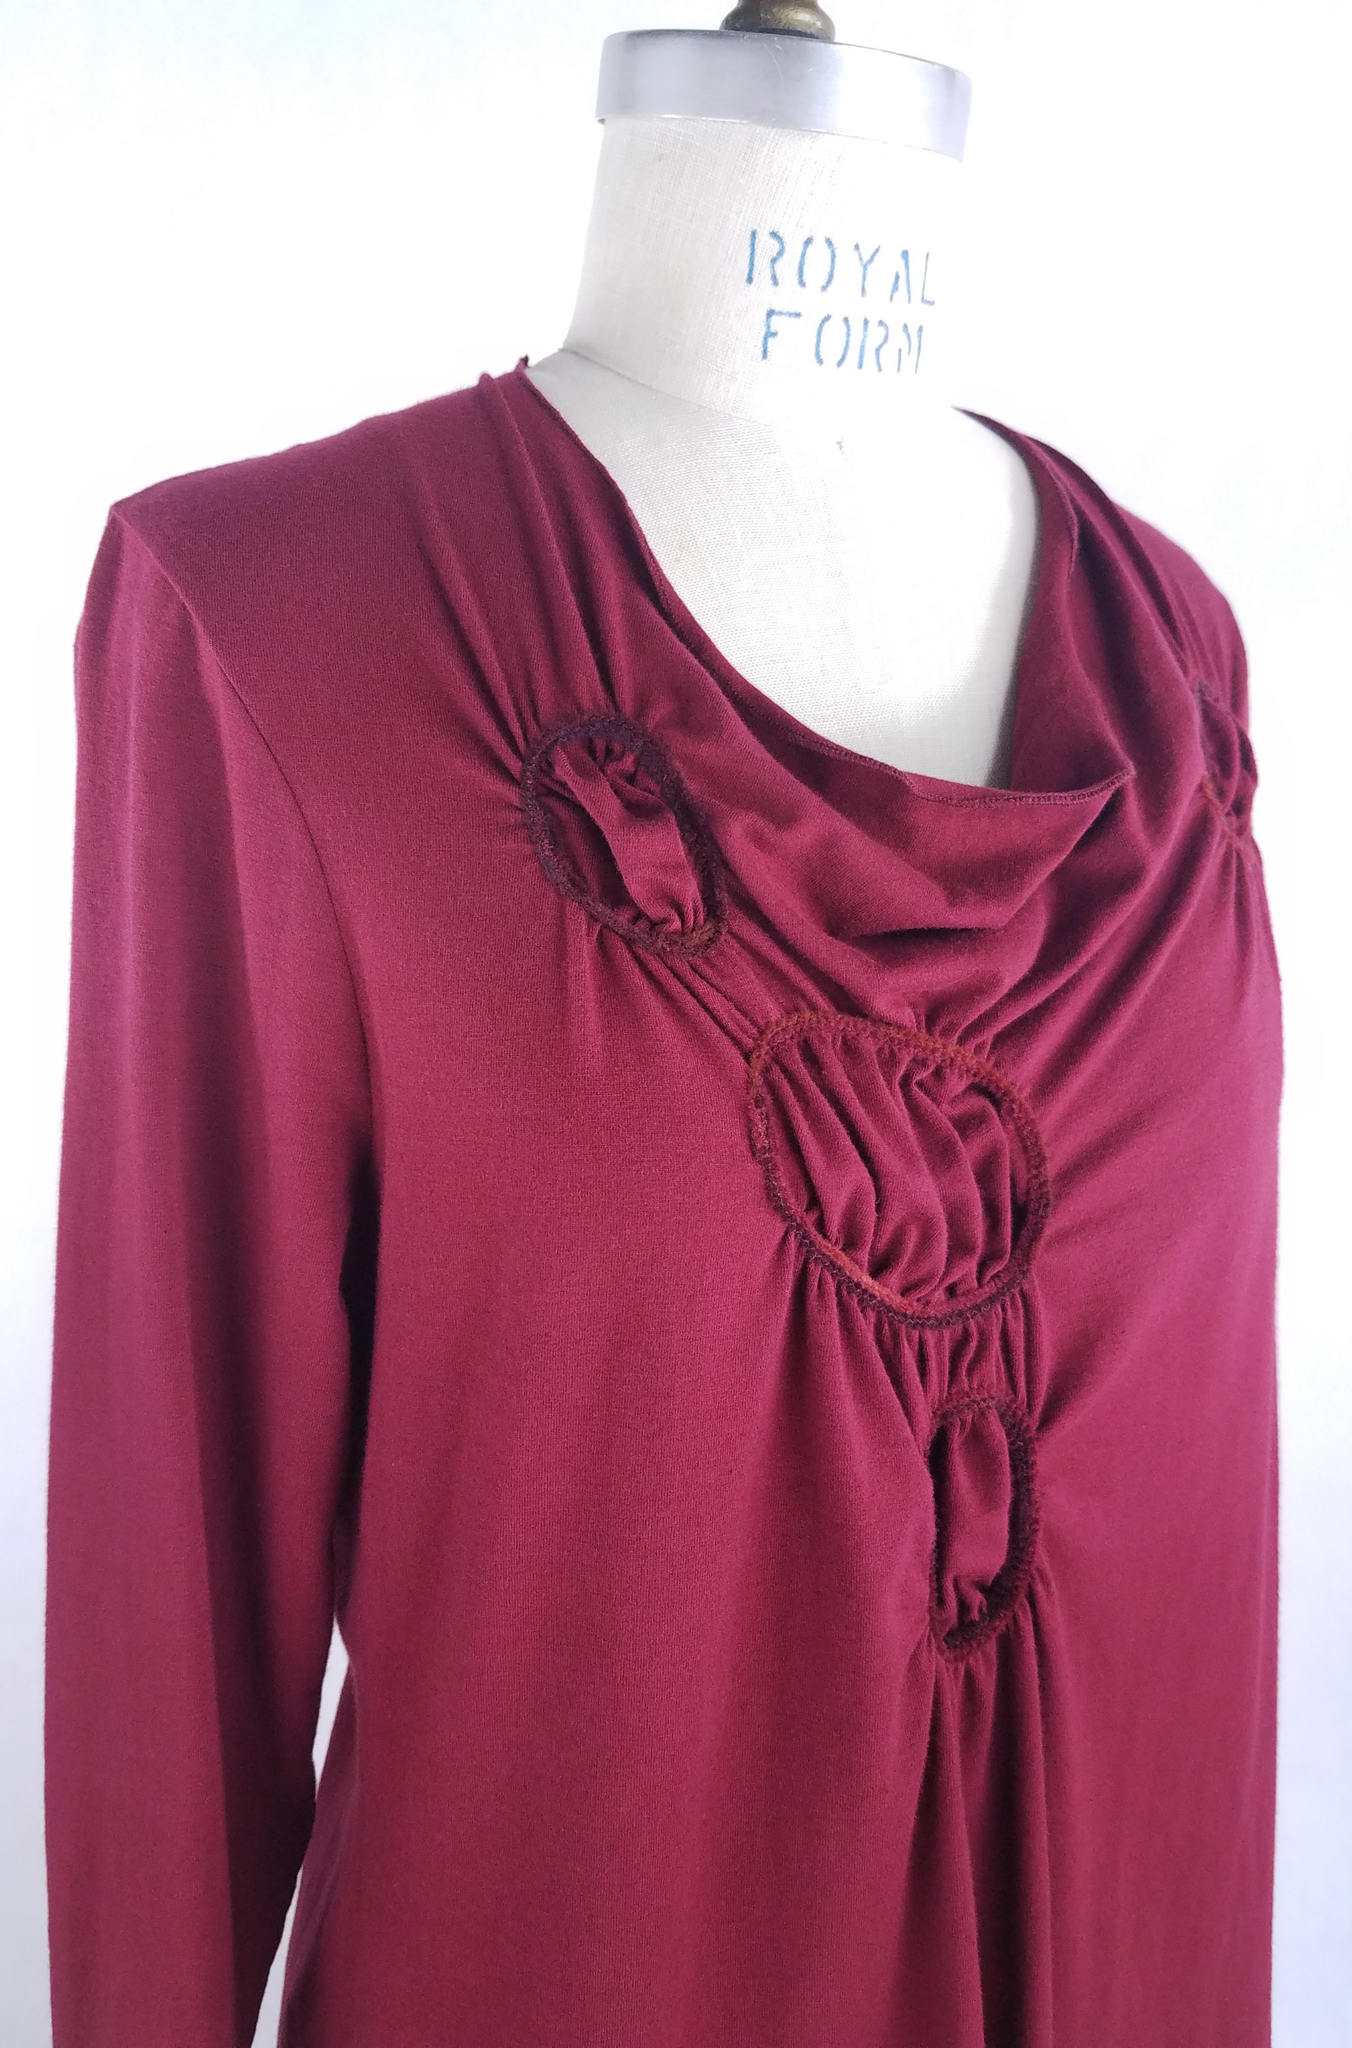 Gathered Circle Tunic in Ruby, detail